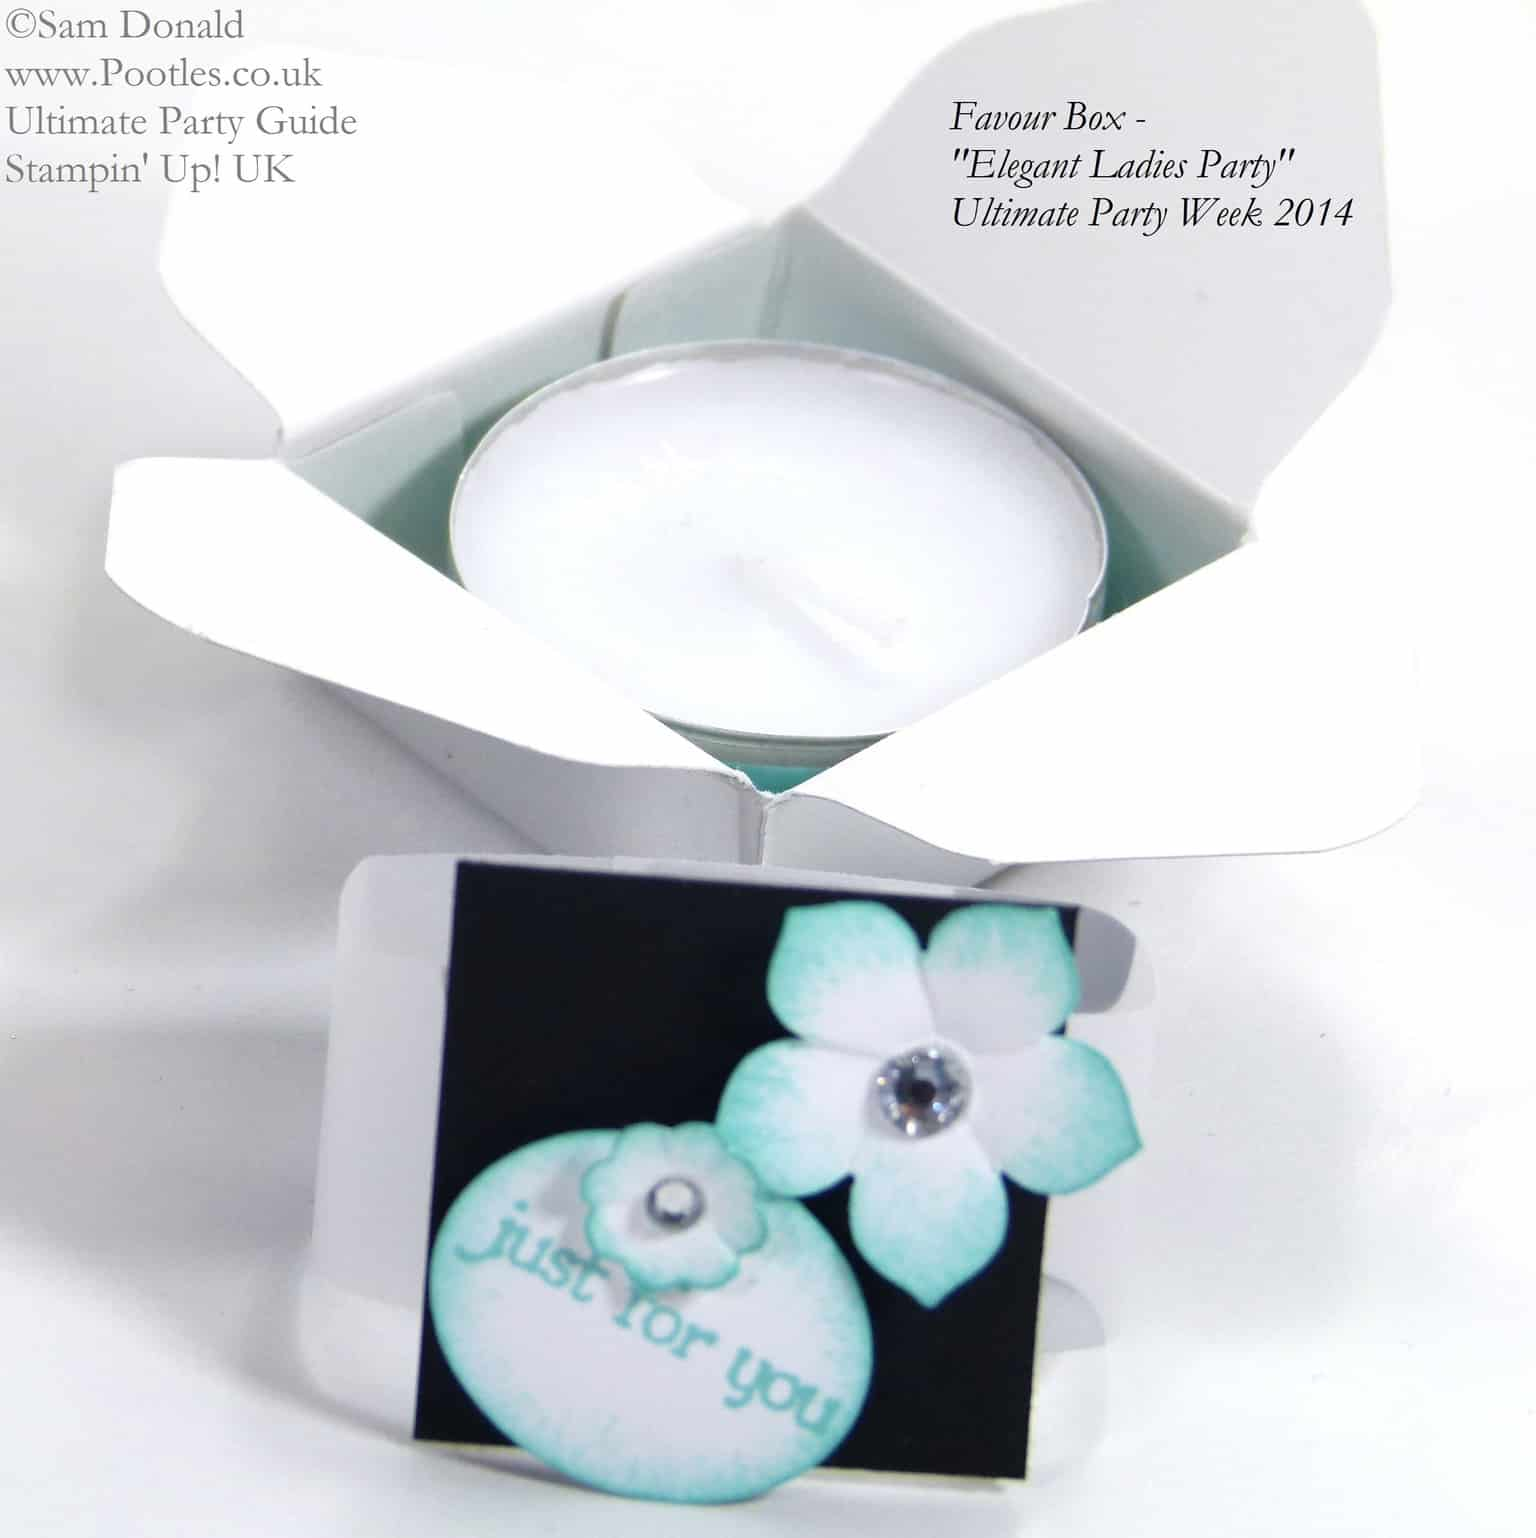 ULTIMATE PARTY WEEK – Tiny Tealight/Goodie Box